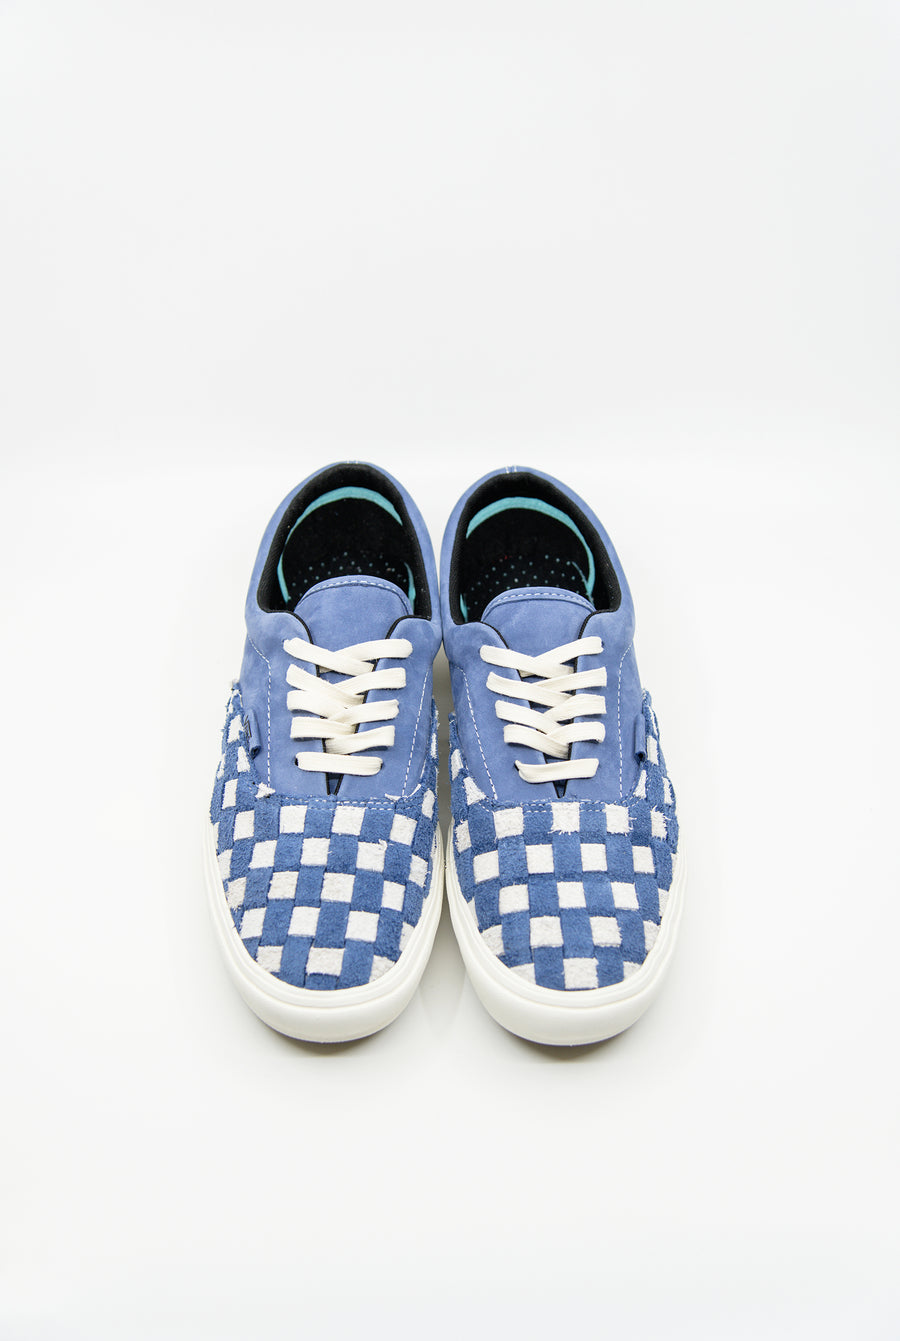 Vans Vault Comfycush Era LX Checkerboard Navy/Marshmallow